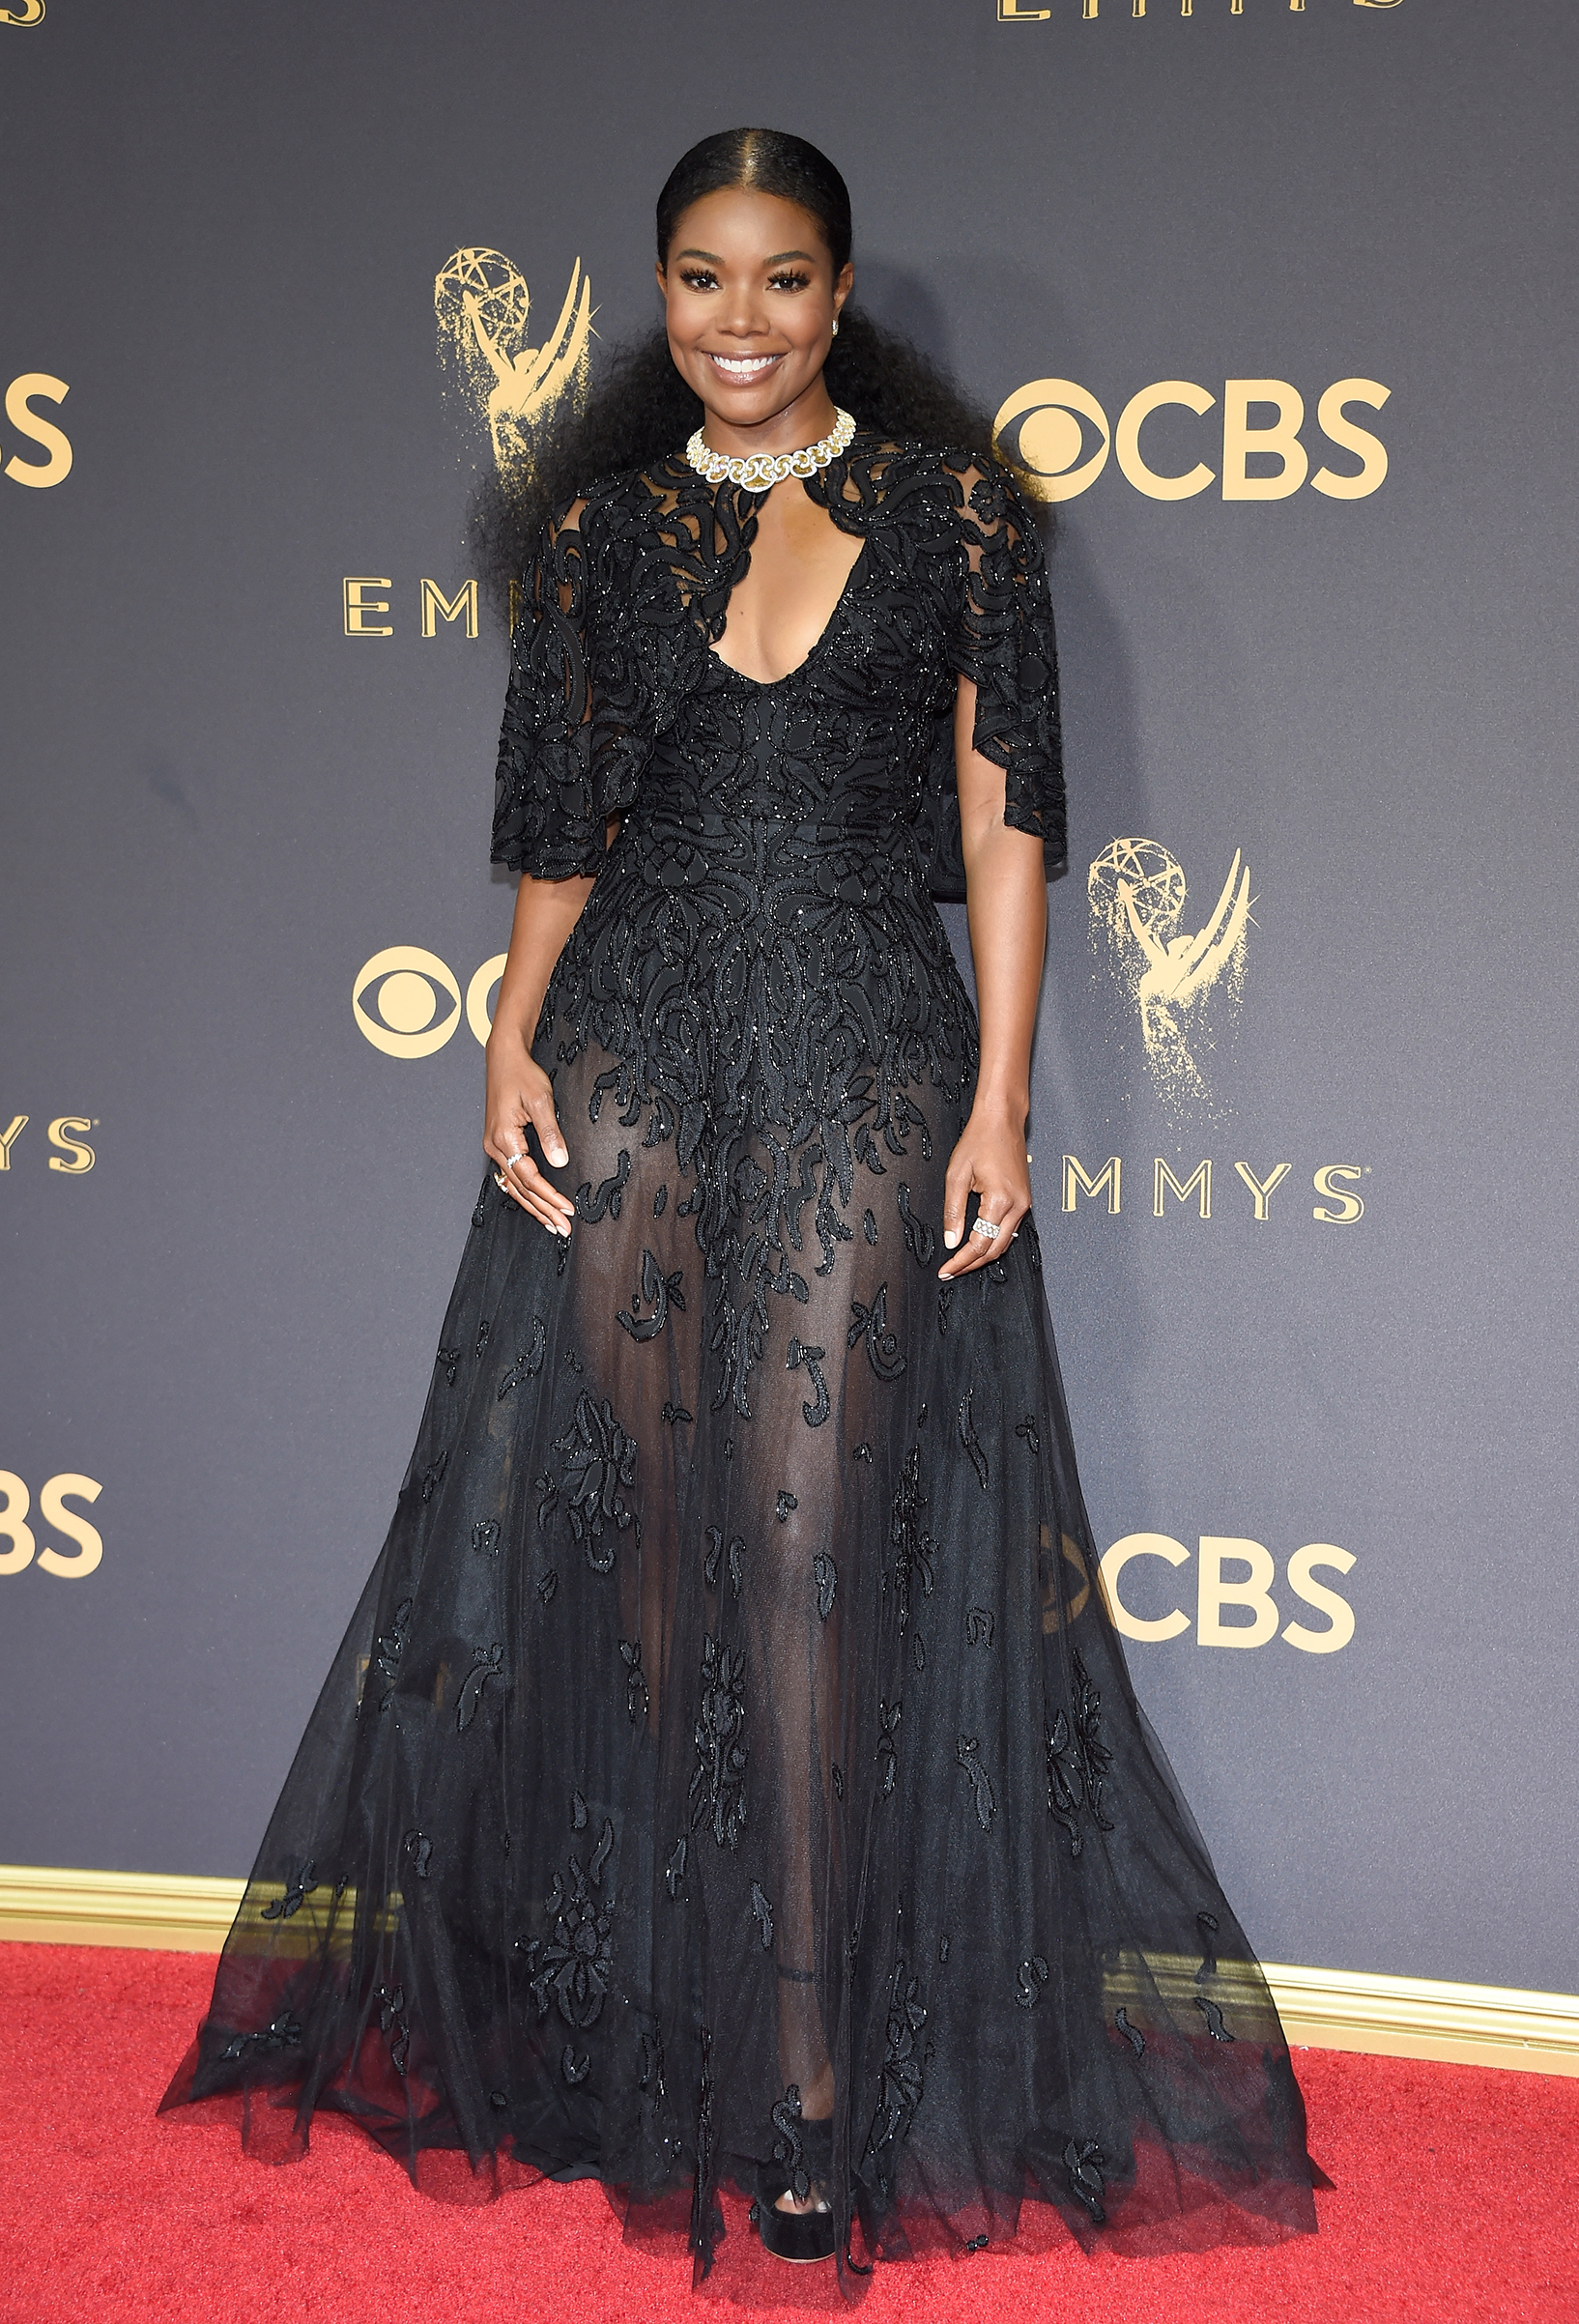 Actor Gabrielle Union attends the 69th Annual Primetime Emmy Awards at Microsoft Theater on September 17, 2017 in Los Angeles, California.